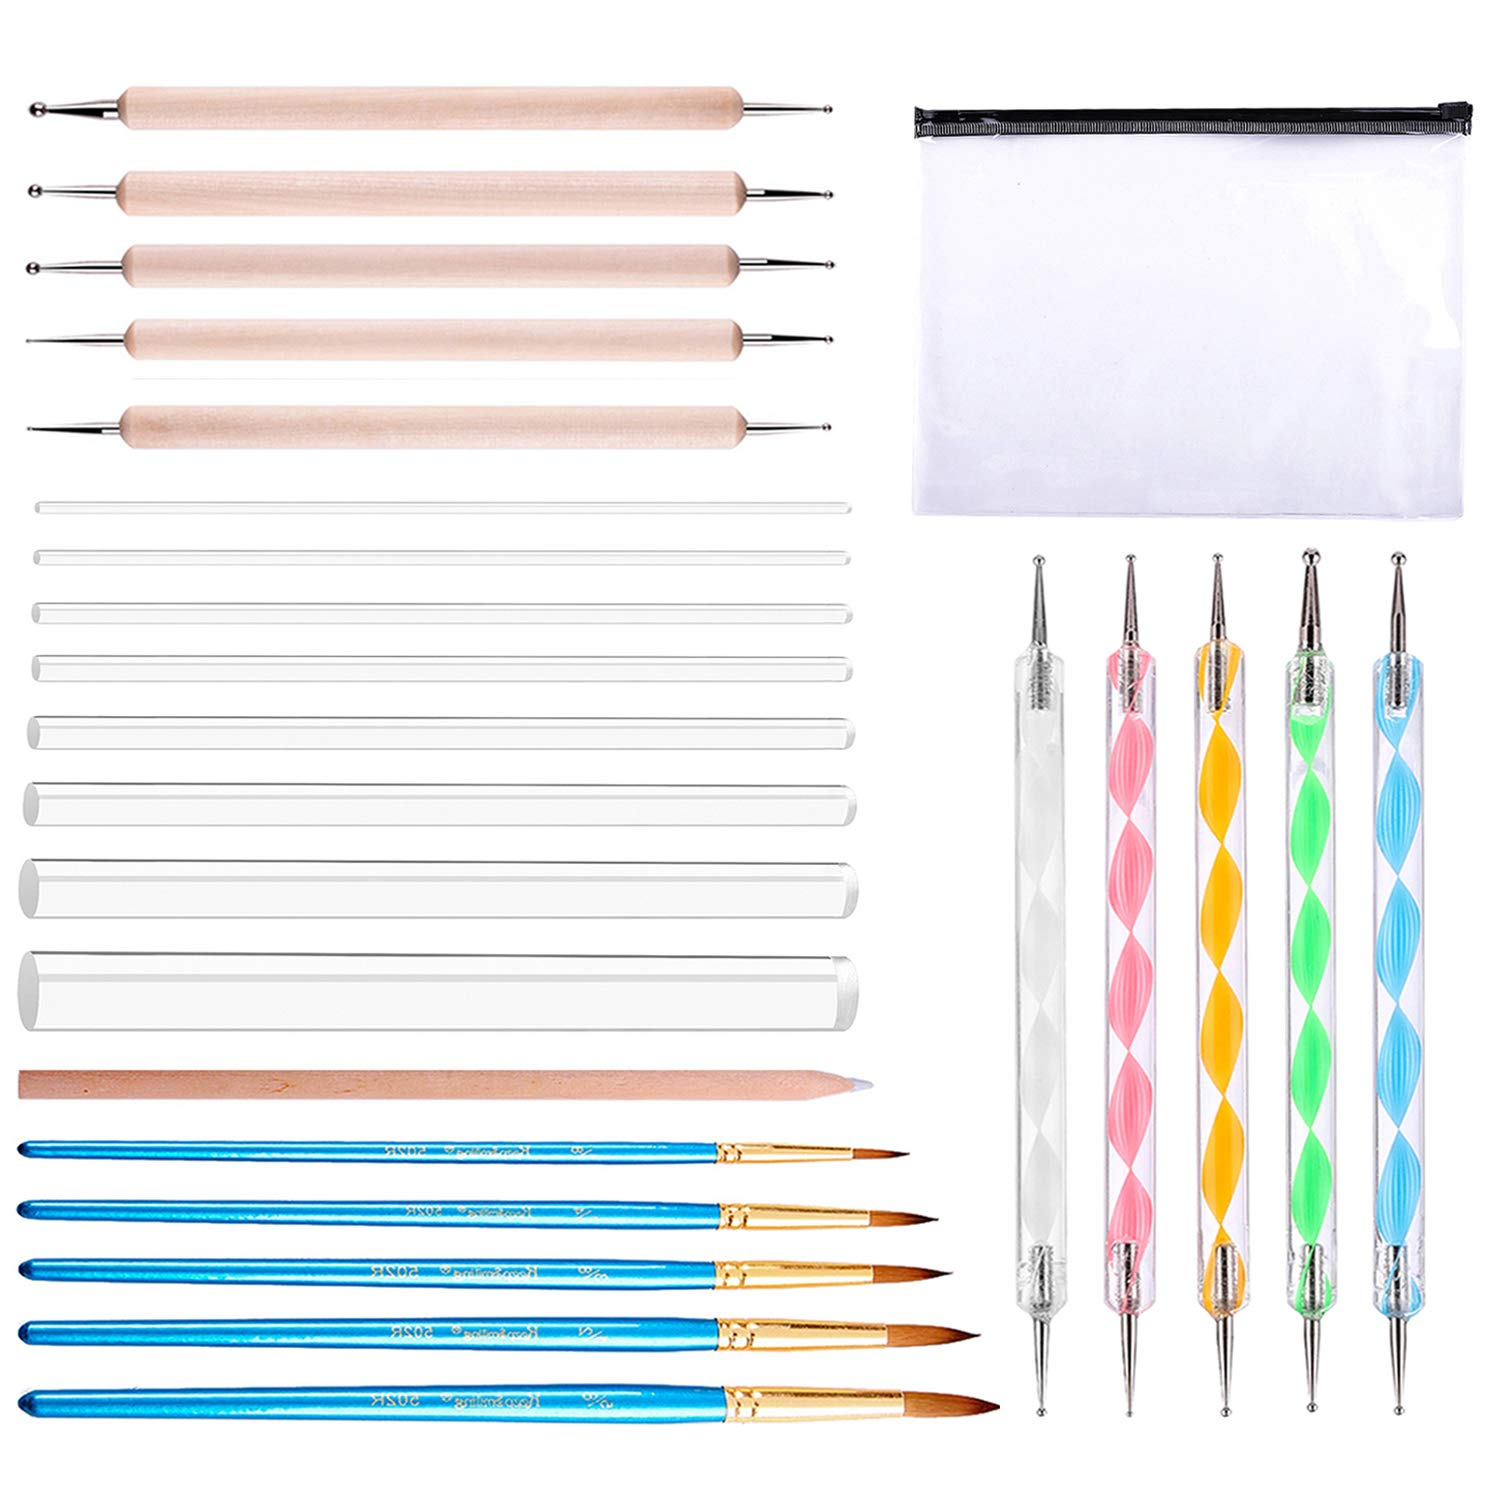 Whaline 25 Pieces Dotting Tool Set for Mandala Rock Painting, Nail Art Painting, Drawing & Drafting and Kids' Crafts